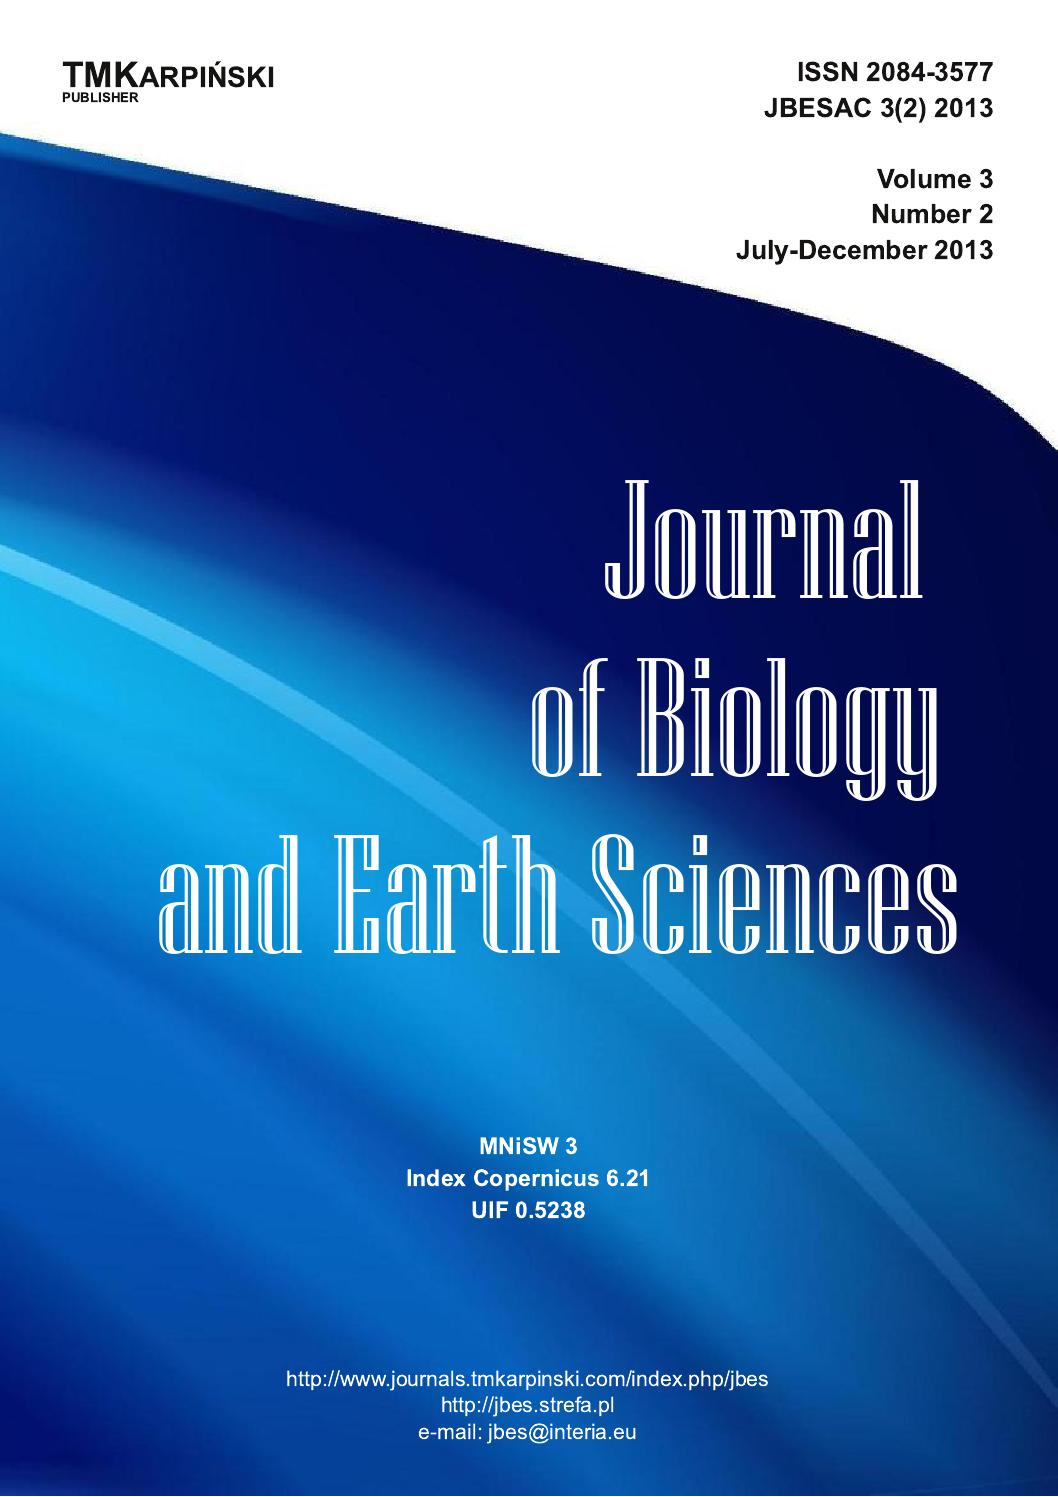 Jbes2013v3i2 full issue100 by TMKarpiski Publisher